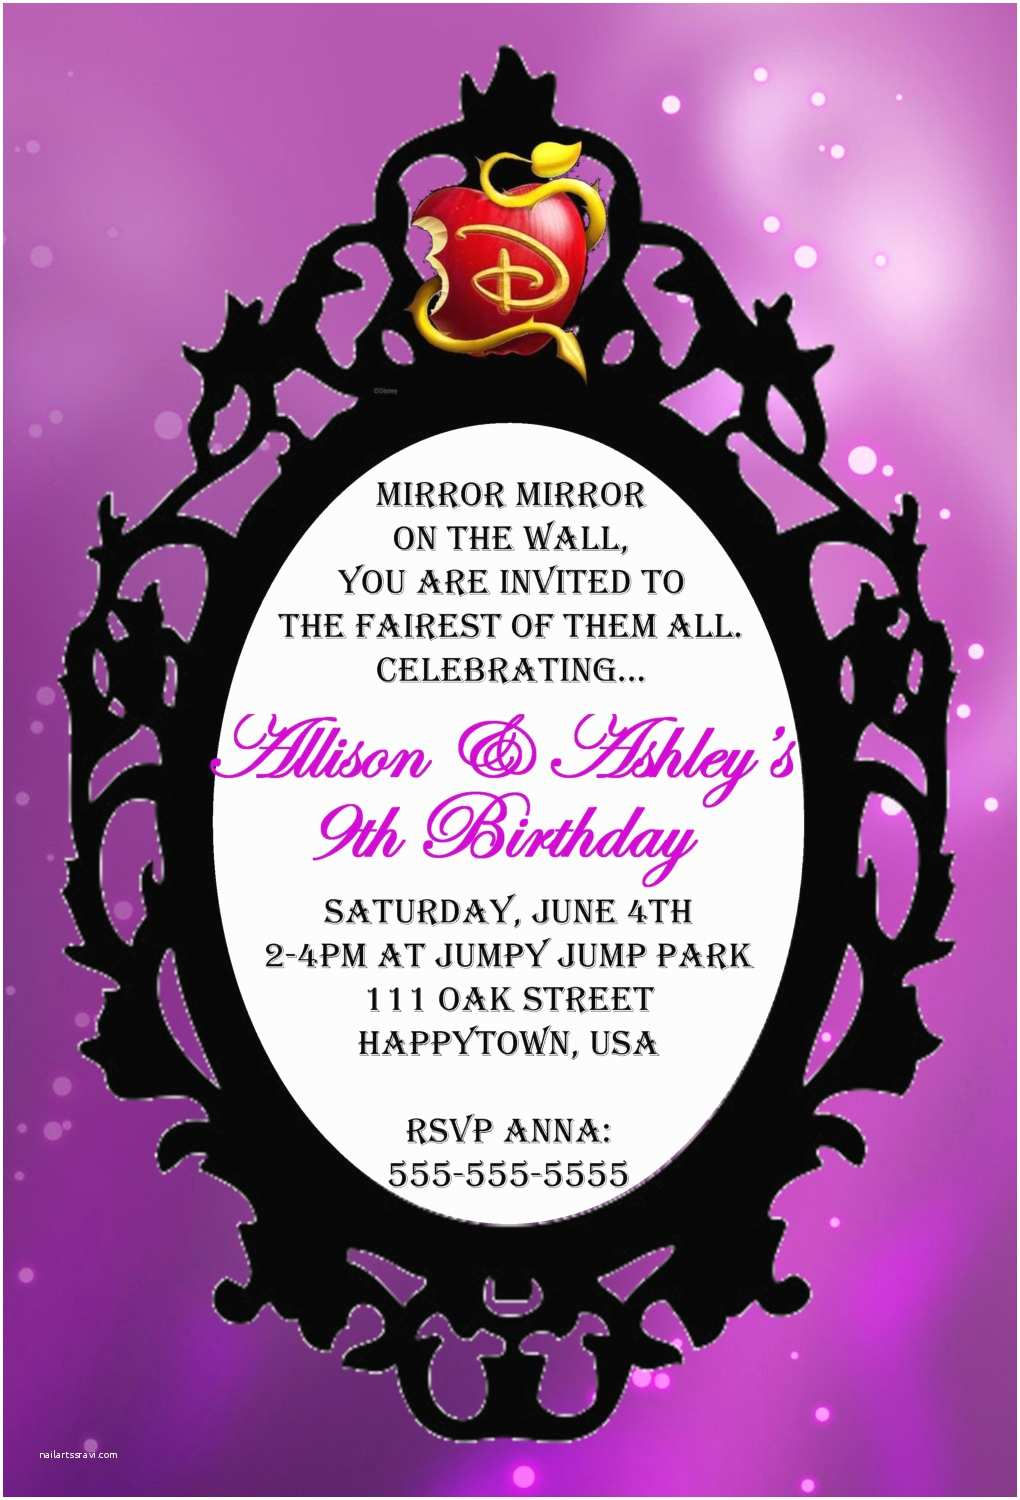 Descendants Party Invitations Personalized Descendants Mirror Invitation